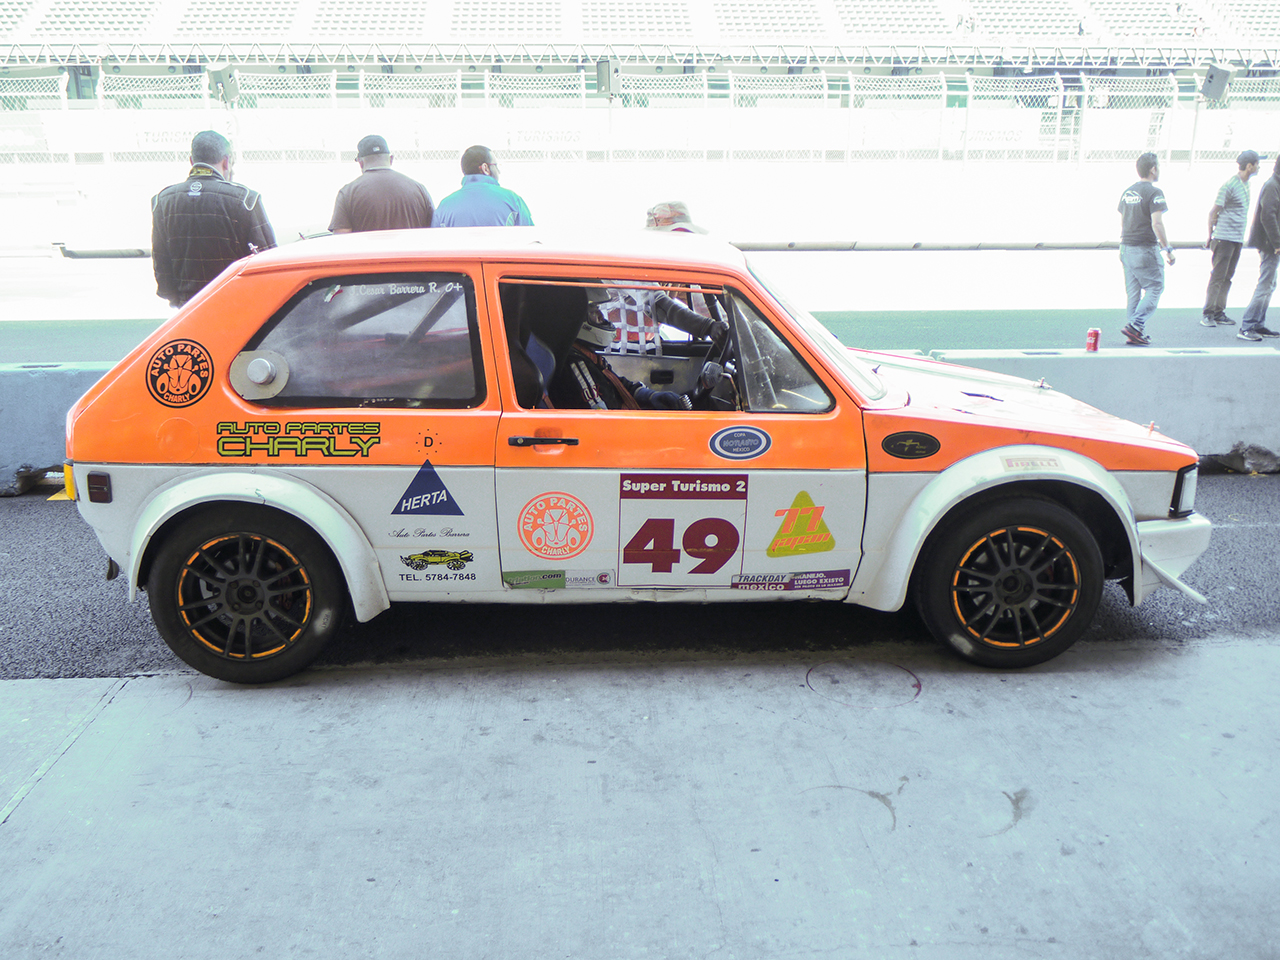 Super Touring Rabbit. This type of racing can be done on the cheap if you have dedication.